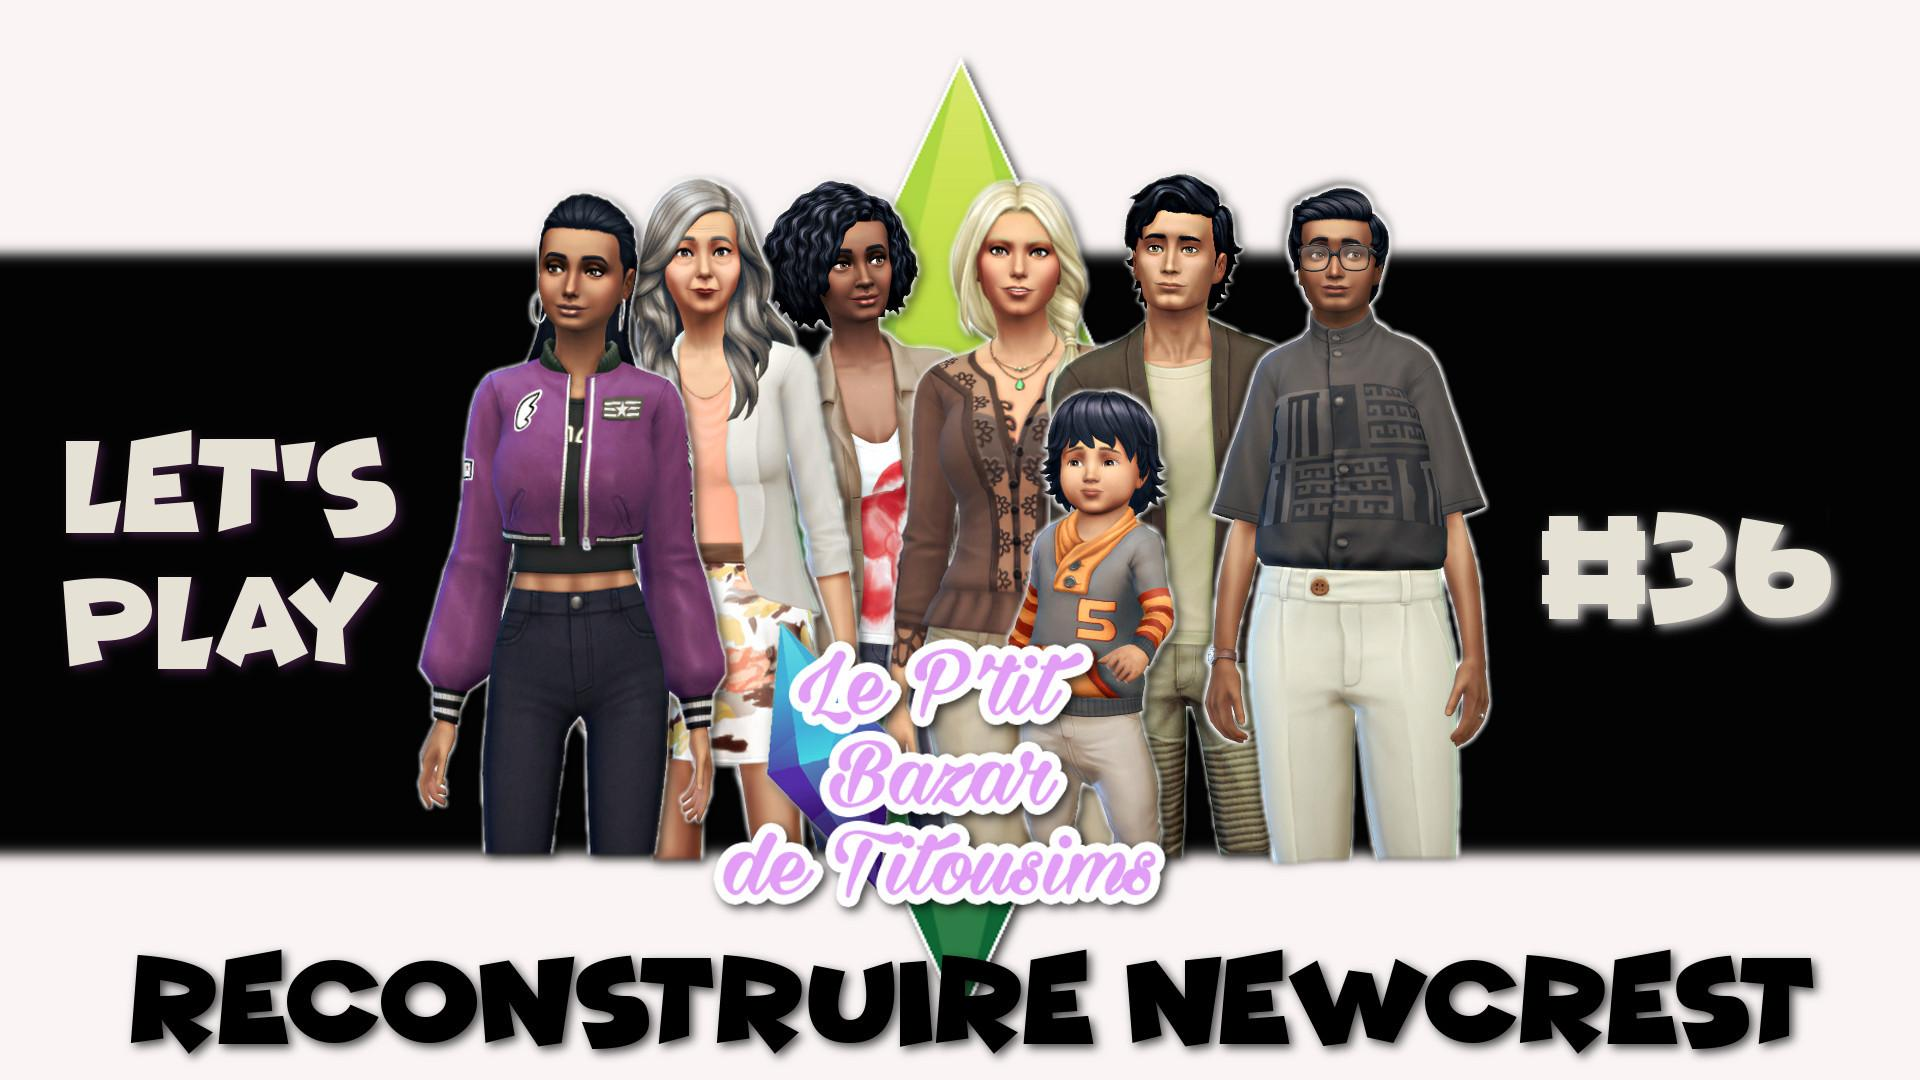 [LET'S PLAY] Reconstruire Newcrest #36